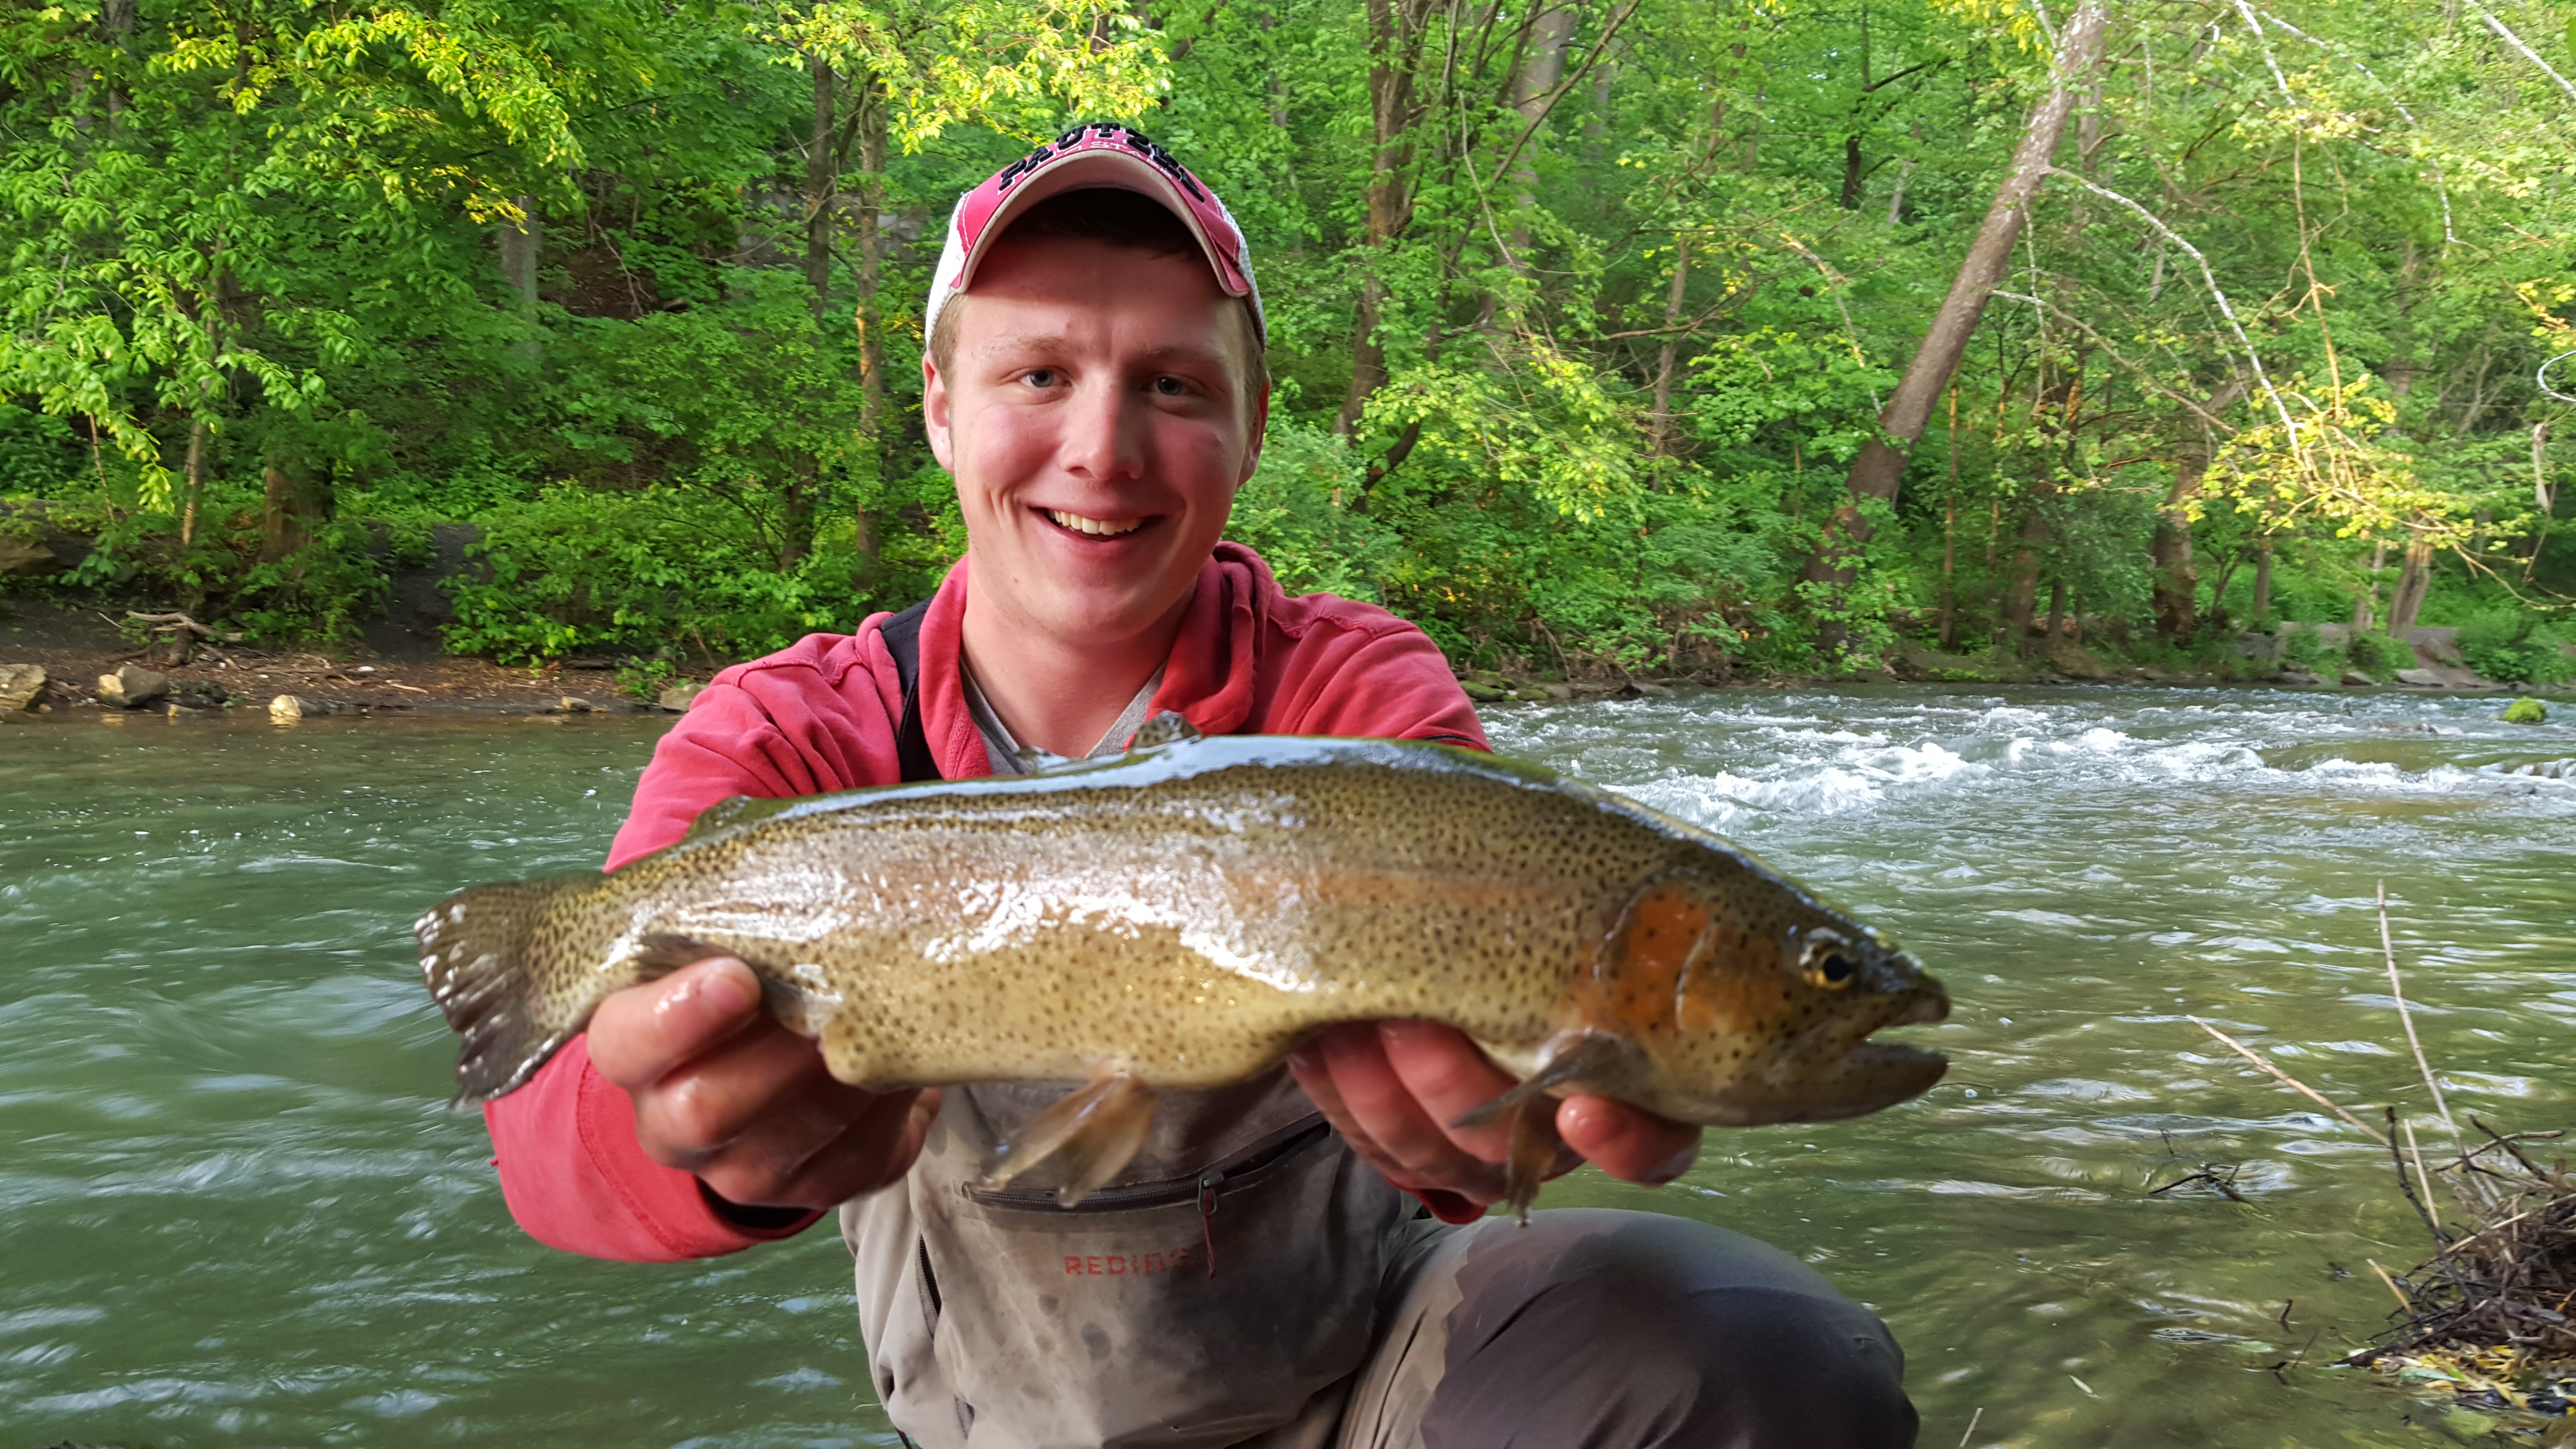 Pa s little lehigh creek still supporting plenty of trout for Pa fish stocking